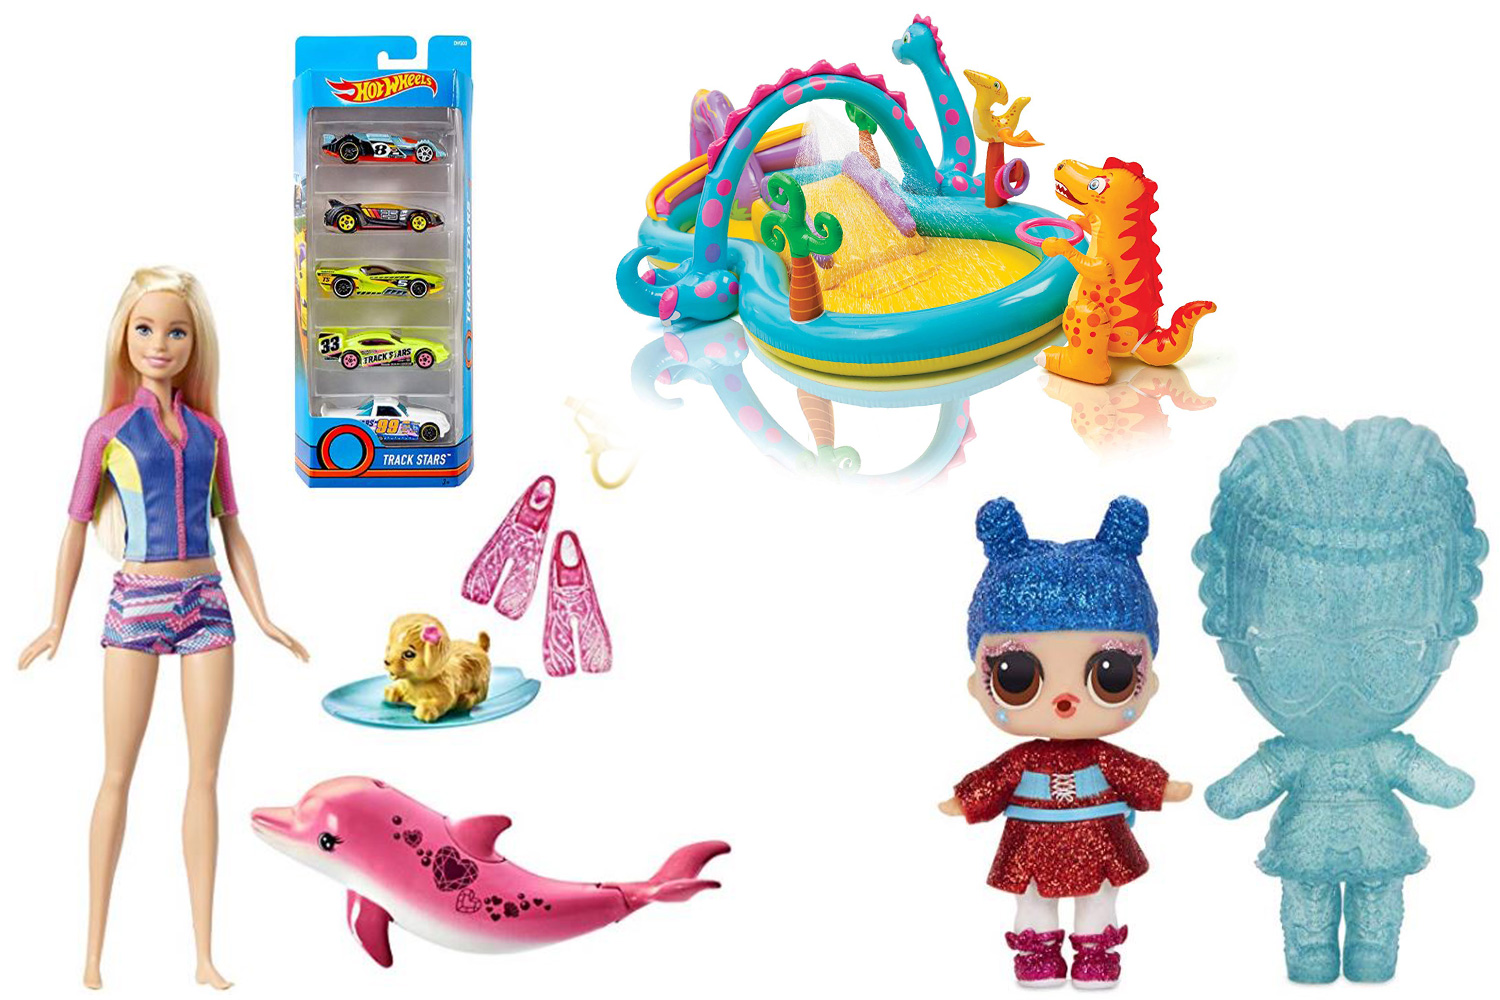 Doll Toys In Amazon Amazon Prime Day 2019 Deals Lol Surprise Barbie